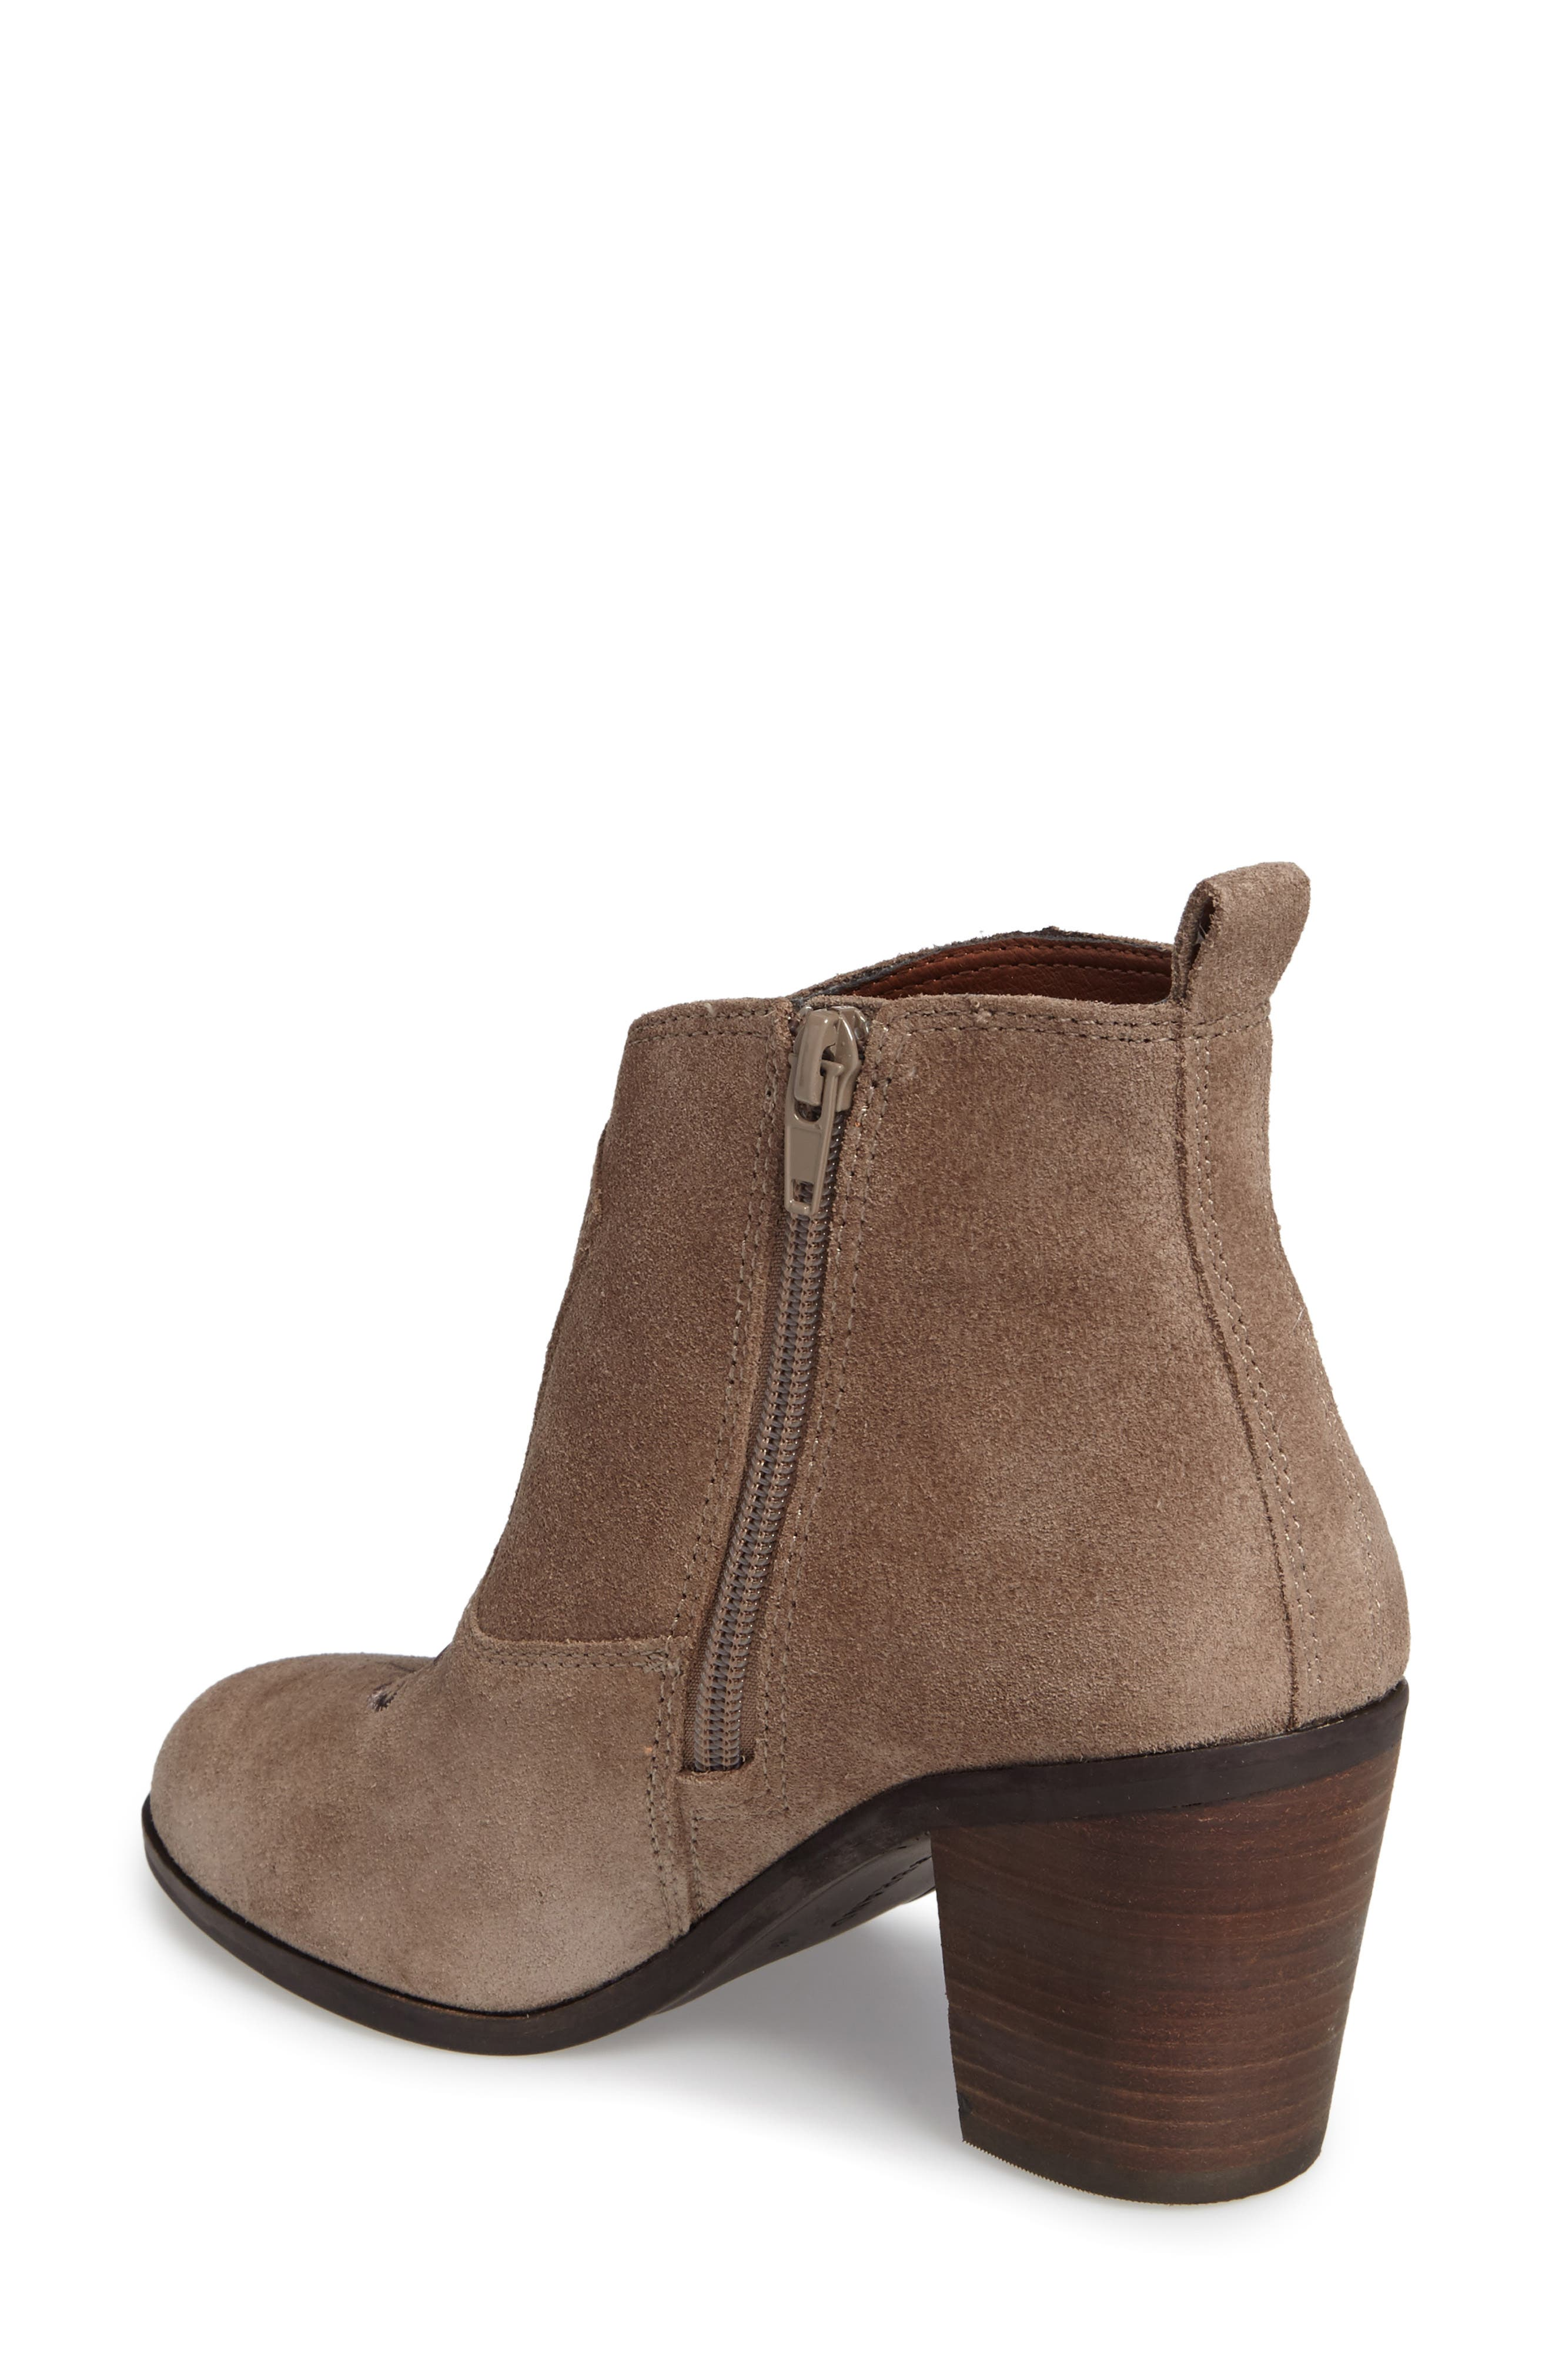 Alternate Image 2  - Lucky Brand Pexton Embroidered Bootie (Women)